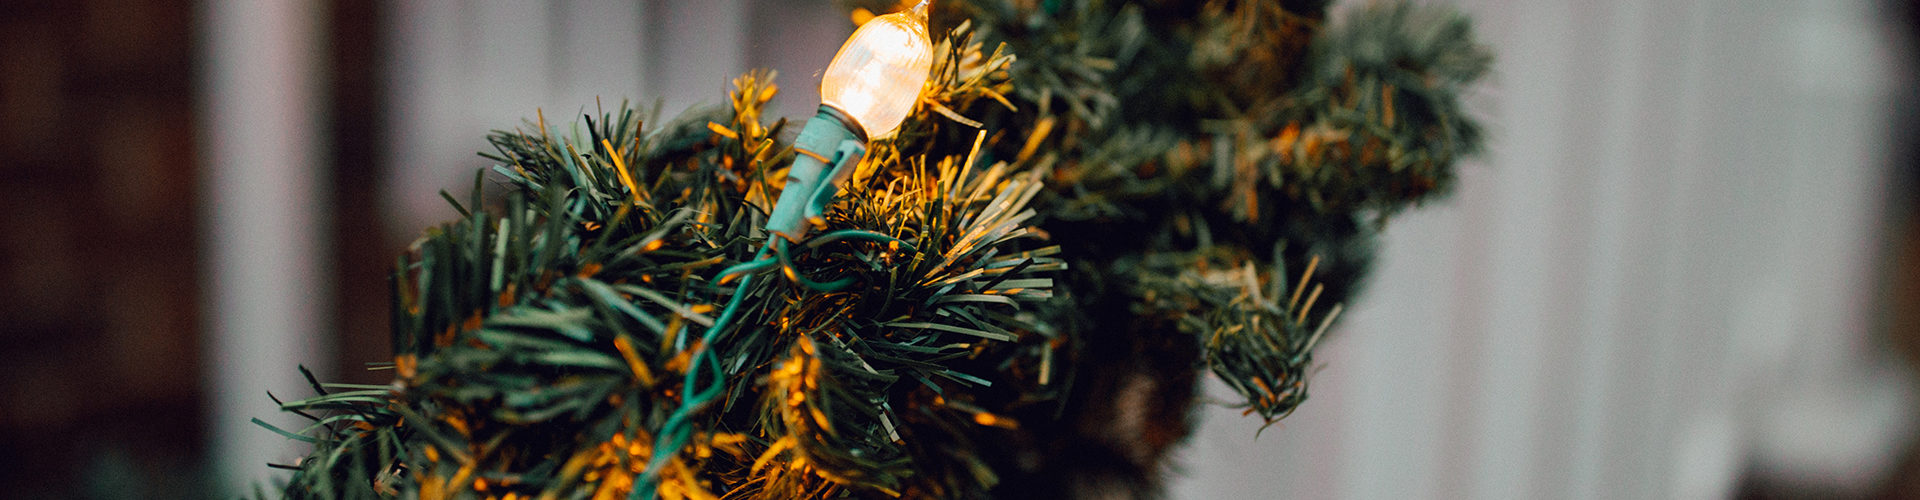 14 Christmas Decoration Storage Ideas and Tips